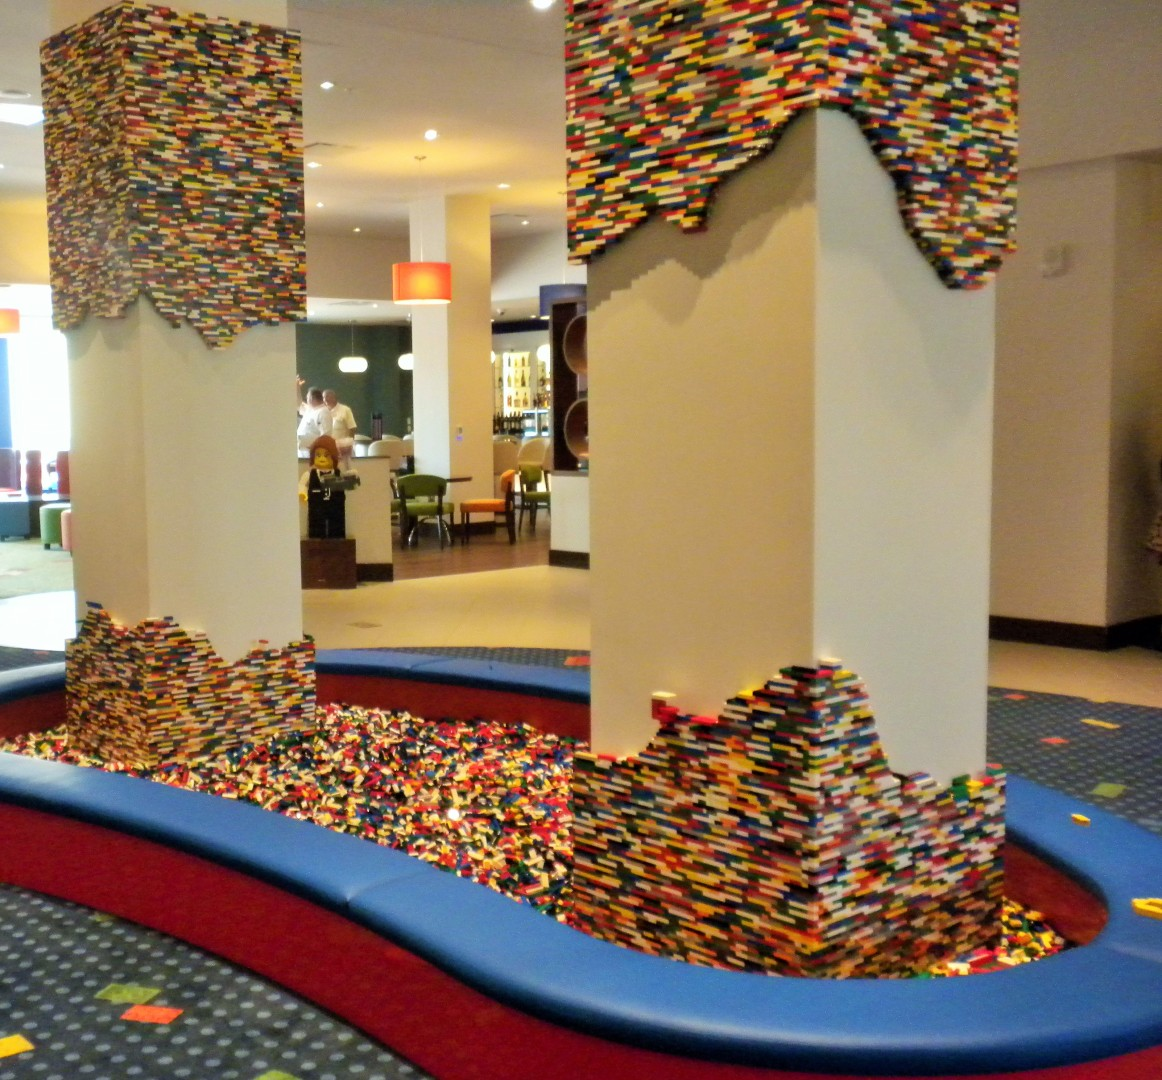 The main Lego pit at the Legoland Hotel Florida